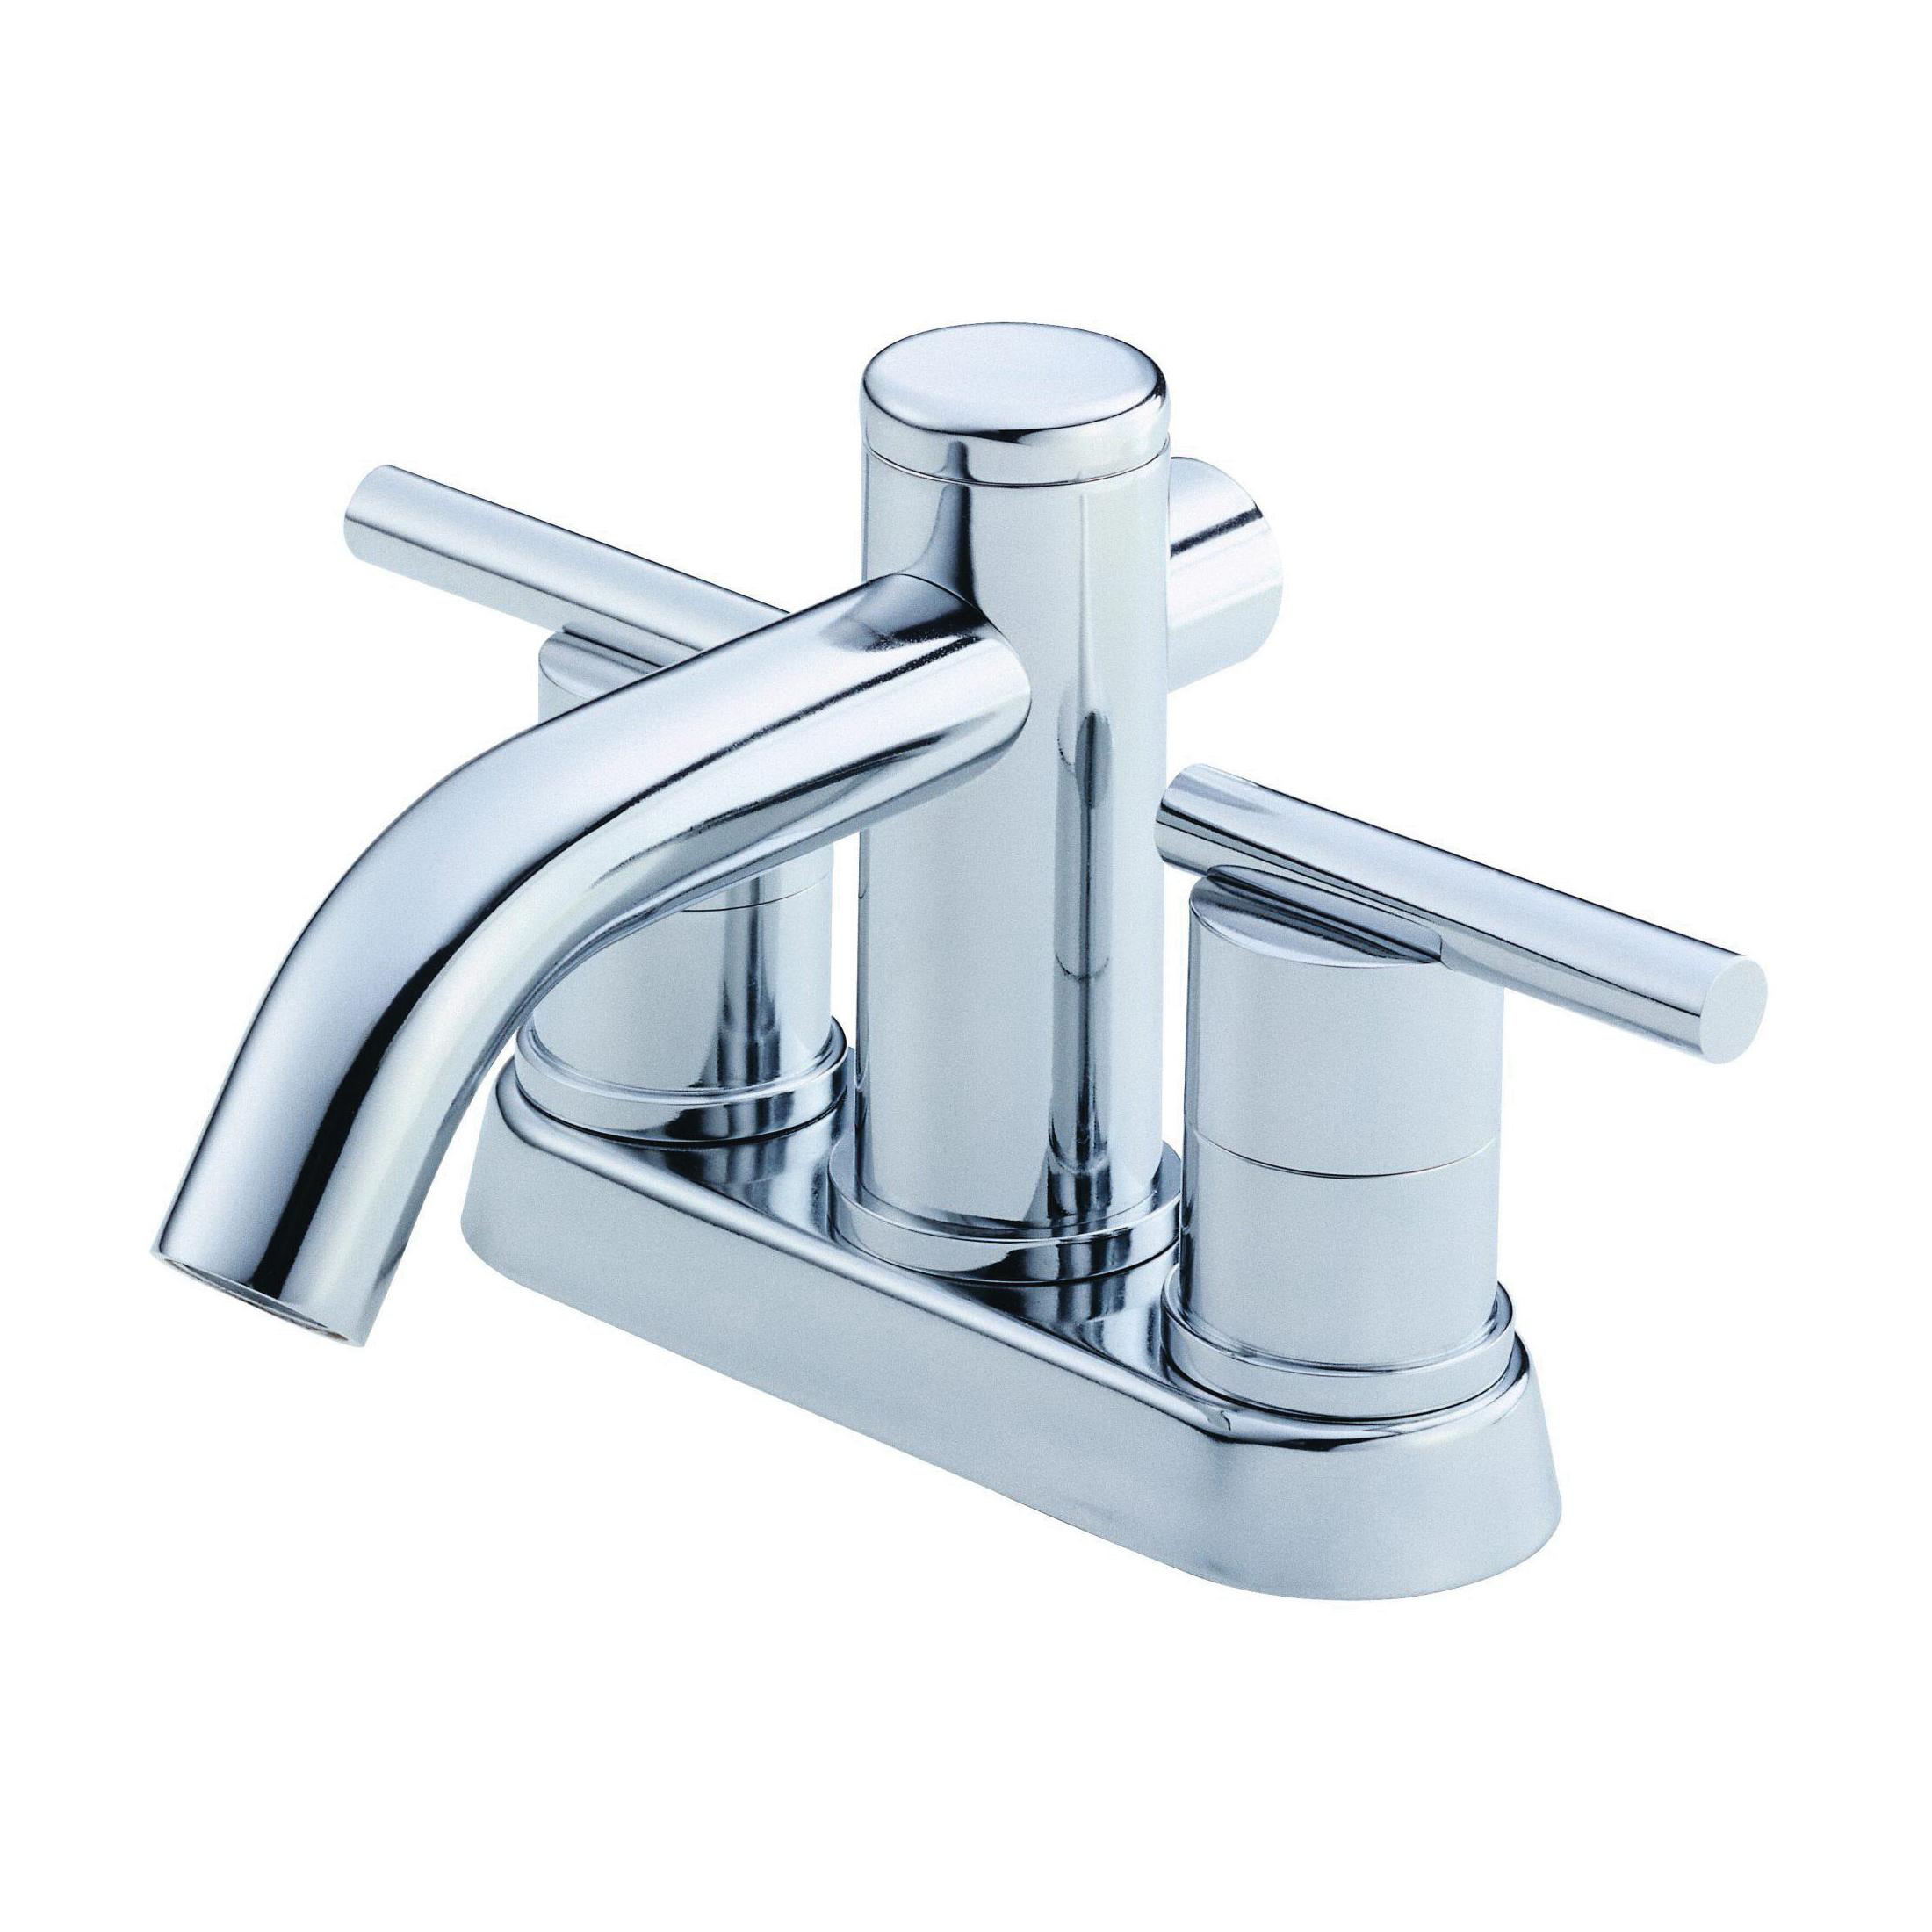 Danze® D301158 Centerset Lavatory Faucet, Parma®, Polished Chrome, 2 Handles, Metal Touch-Down Drain, 1.2 gpm